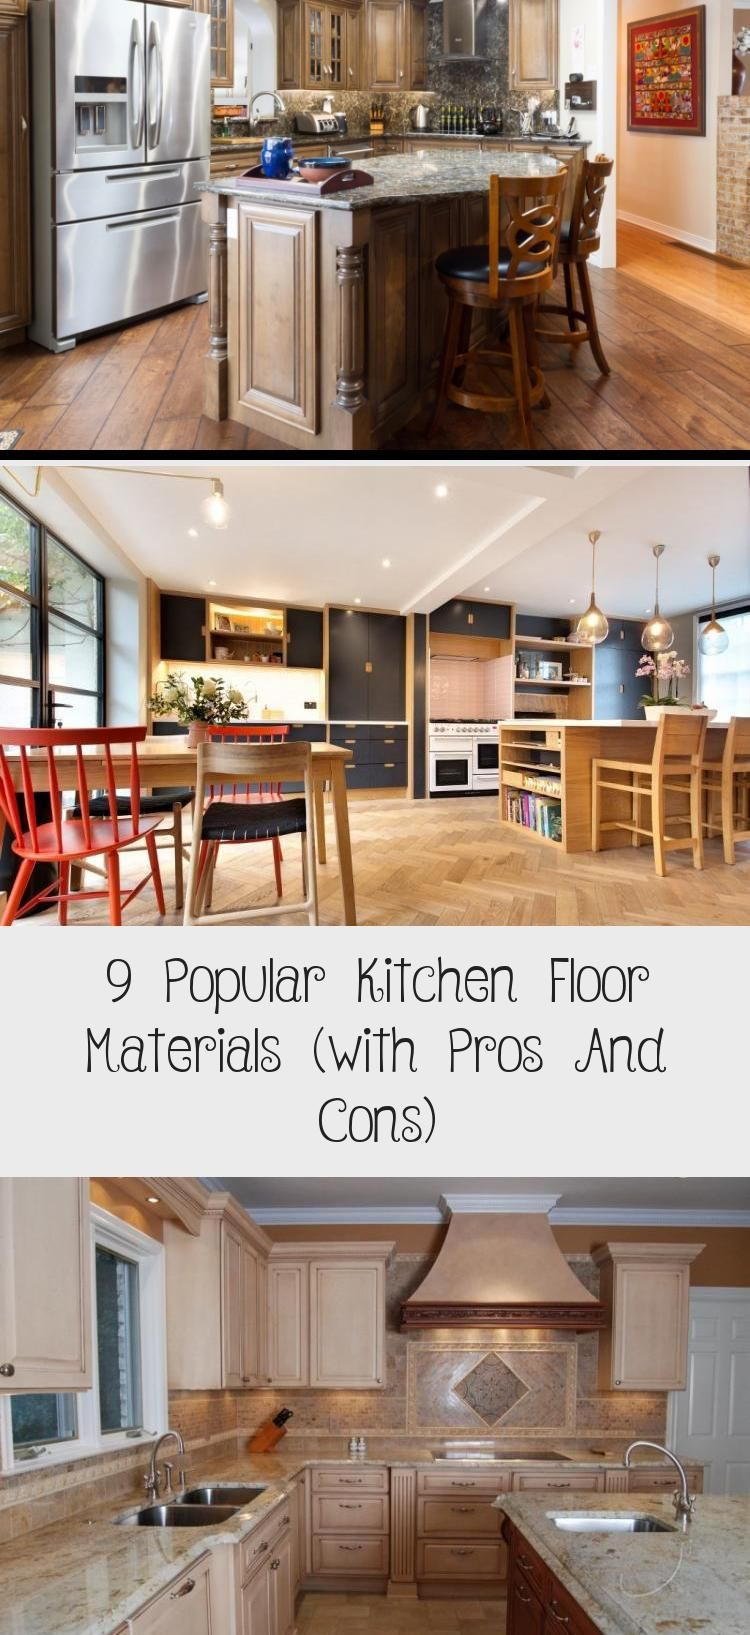 Acquire The Pros And Cons Virtually Alternating Types Of Tile For Your Kitchen Floor From Diy Network Ki In 2020 Kitchen Flooring Flooring Materials Popular Kitchens